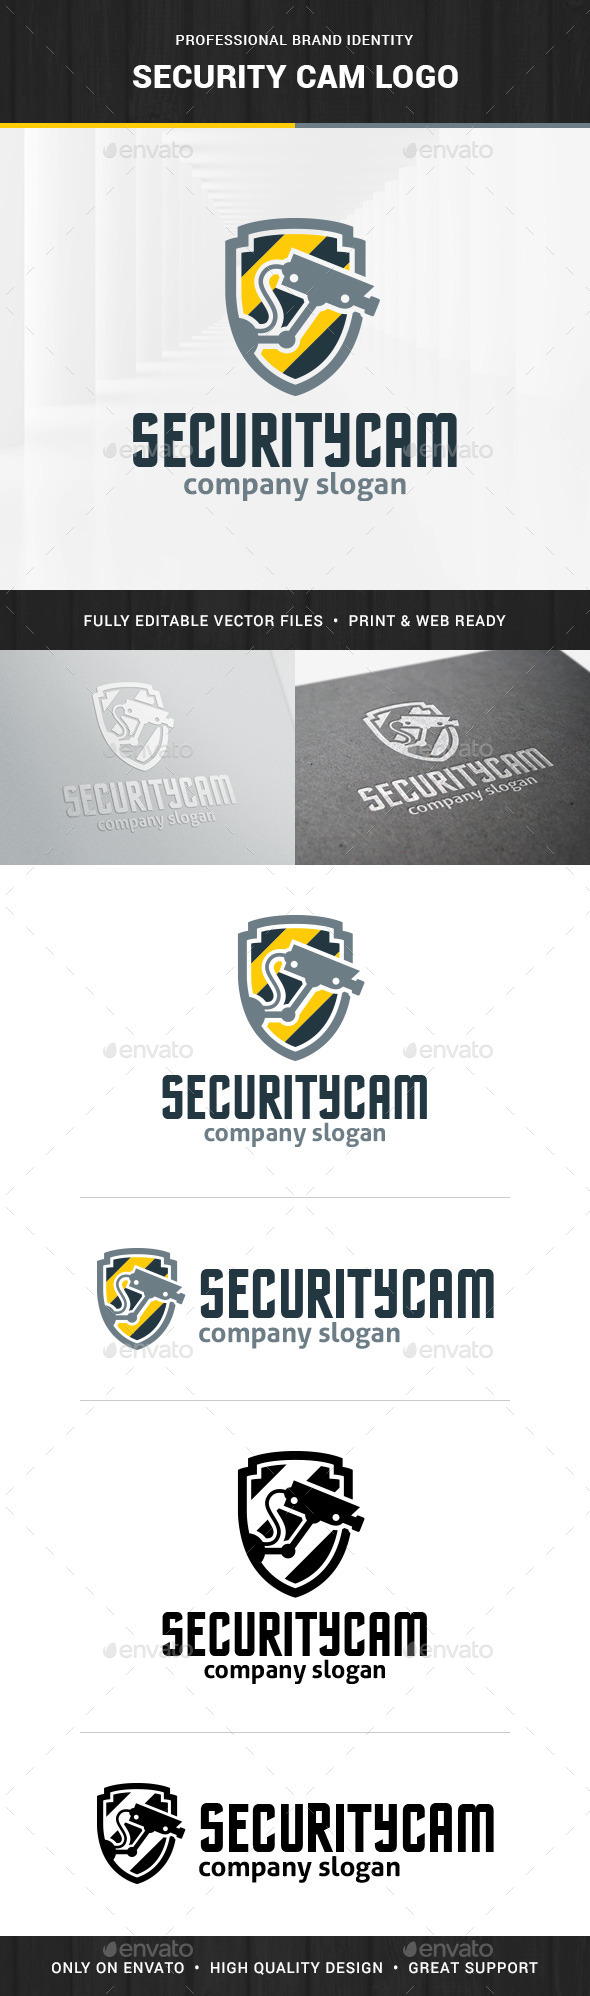 Security Cam Logo Template - Objects Logo Templates